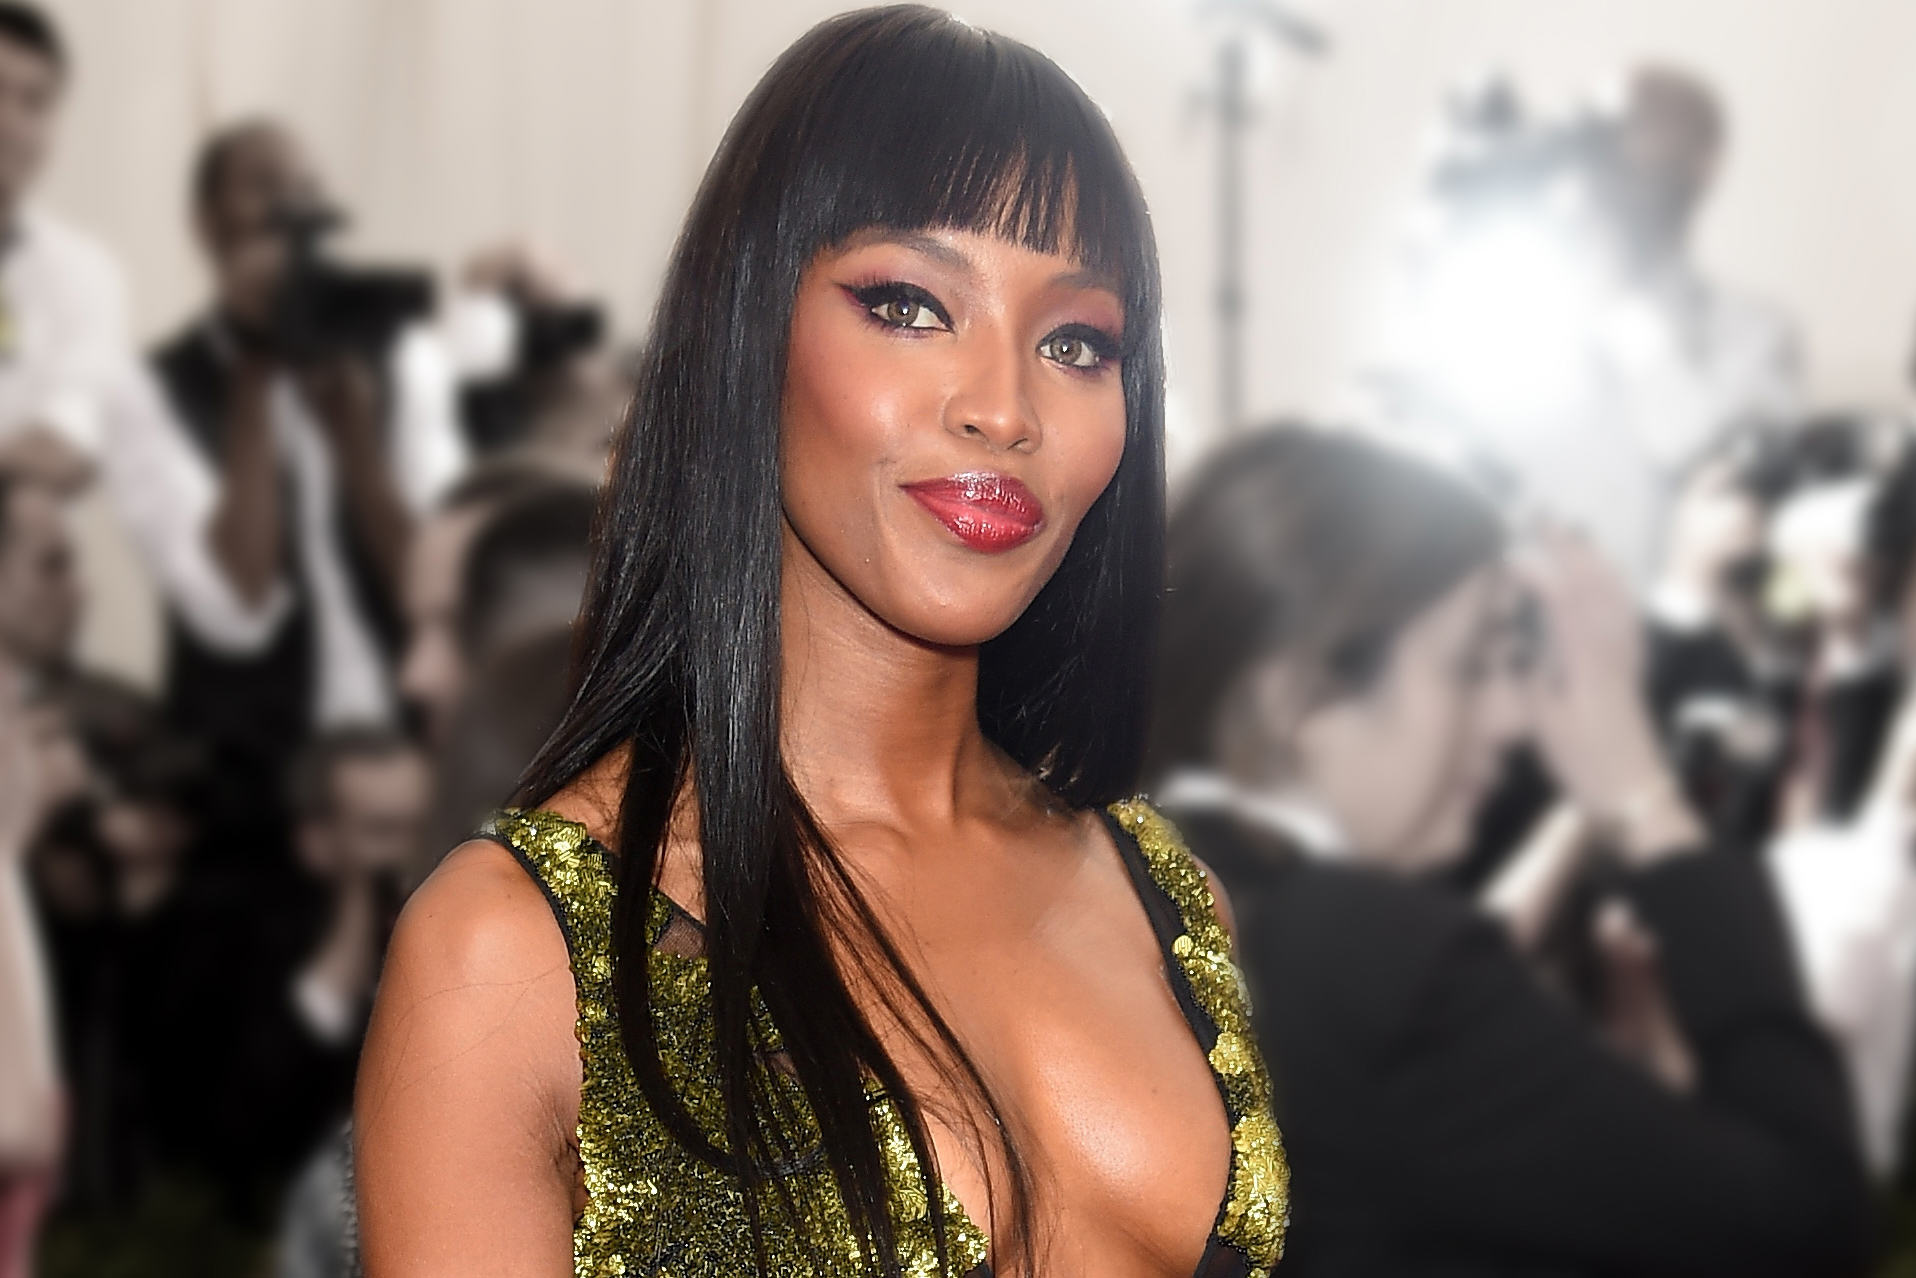 Naomi Campbell Shares Topless Photo Of Herself On Instagram To Fight Their NSFW Policy UNILAD naomi boobs 23